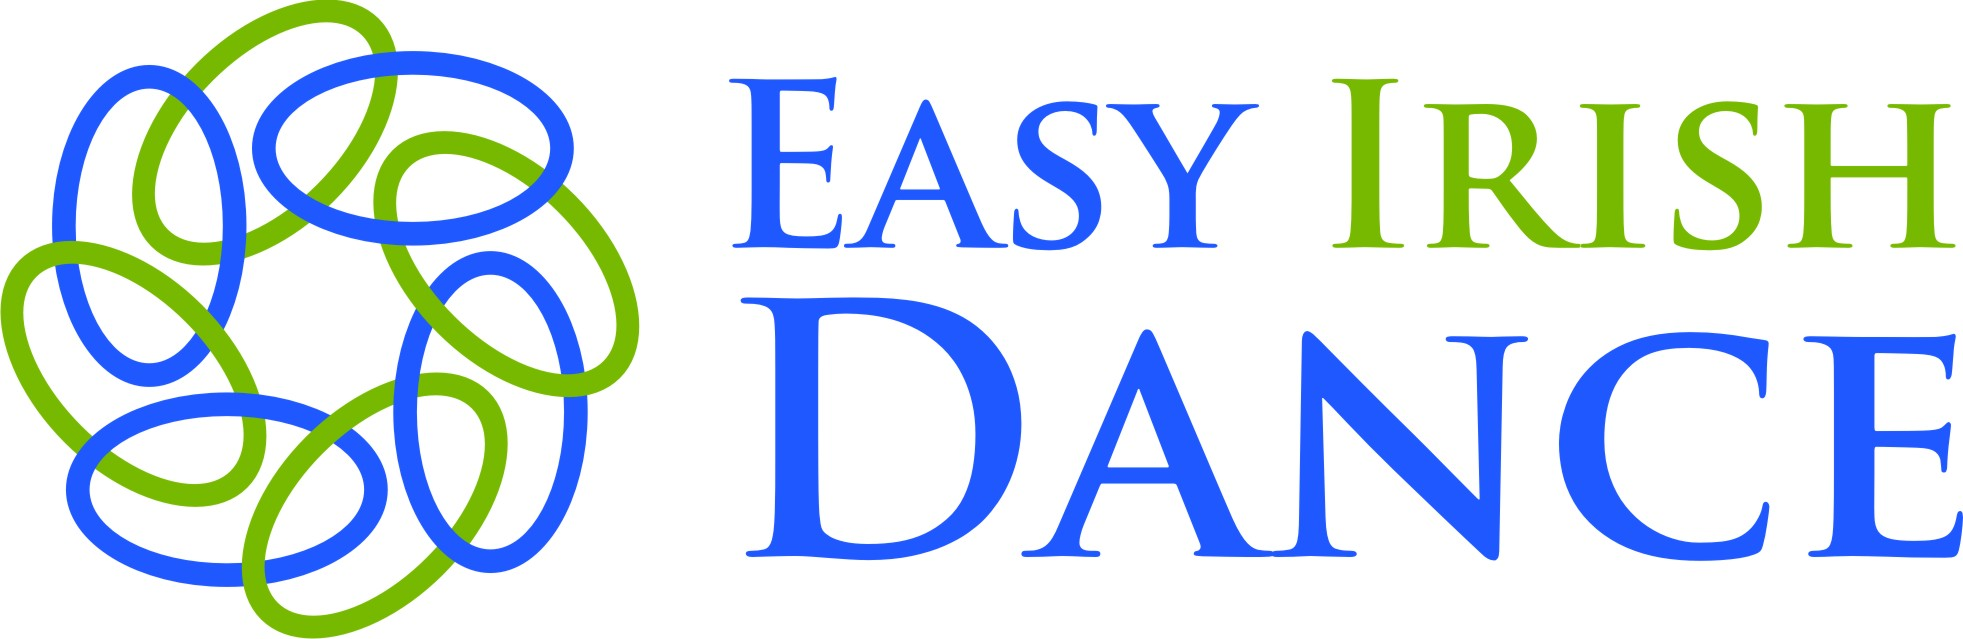 Easy Irish Dance logo